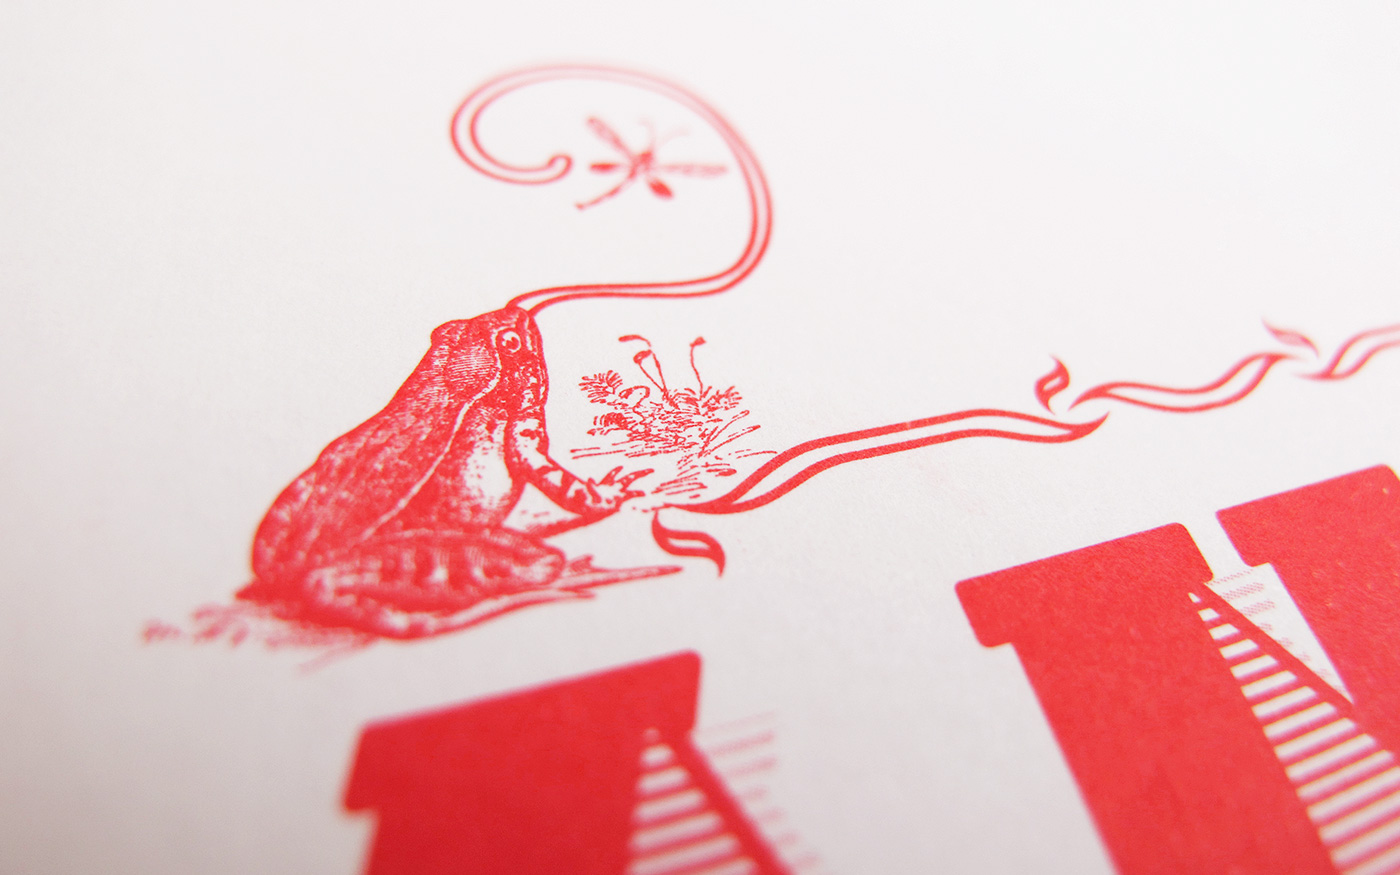 birth announcement spot color offset pantone red girl frog engraving